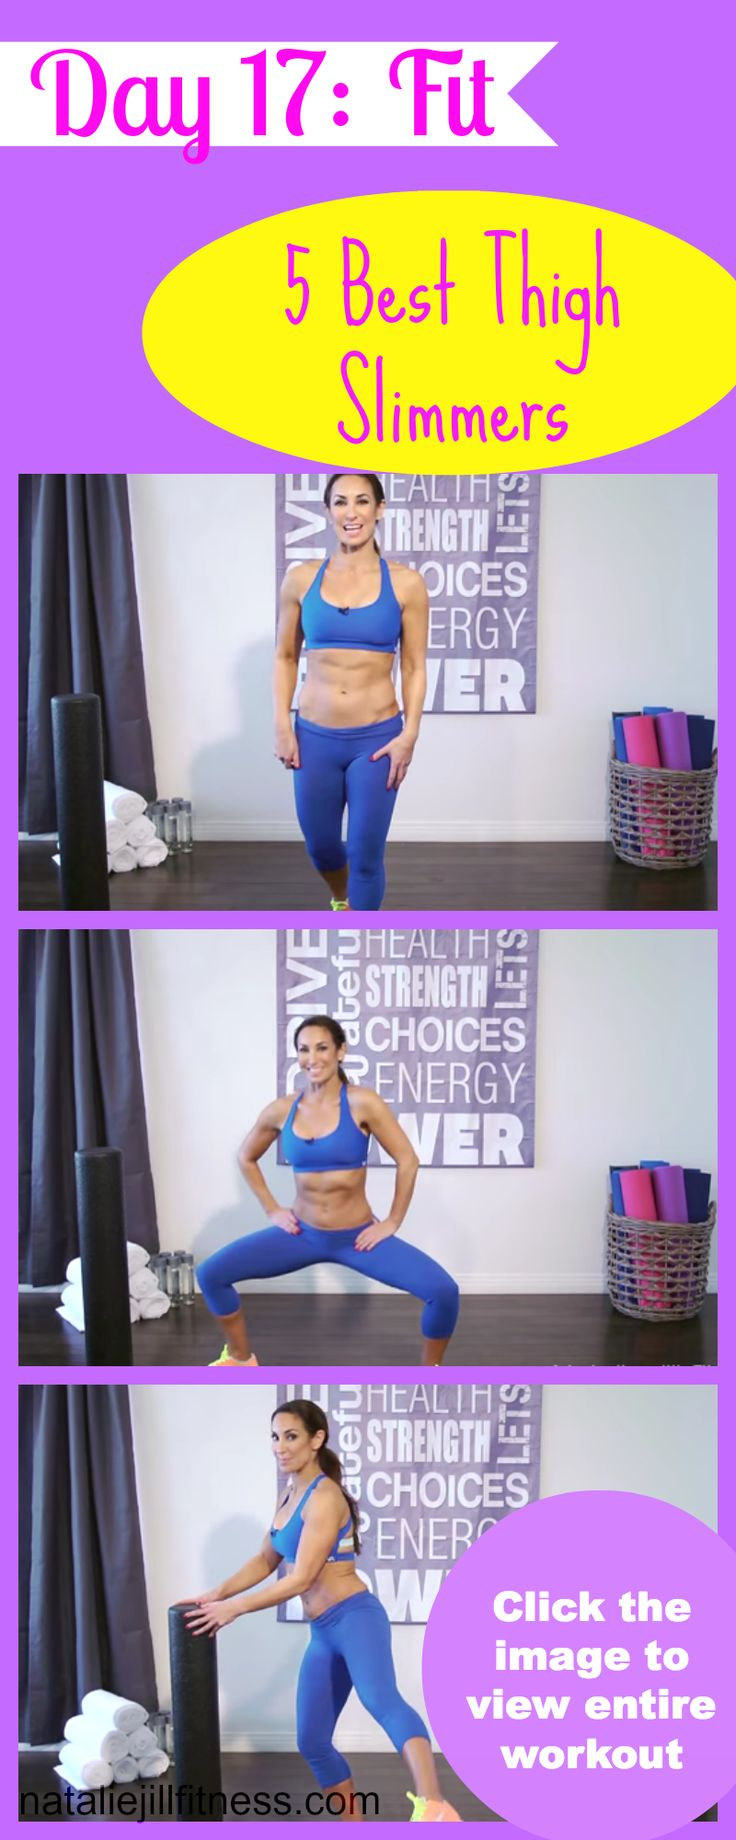 OMG you guys! Get ready for some THIGH SLIMMING craziness! These exercises are going to WORK those inner thighs! WHO is in and WHO is still with me on this challenge? How are you feeling? Click through to do the workout!